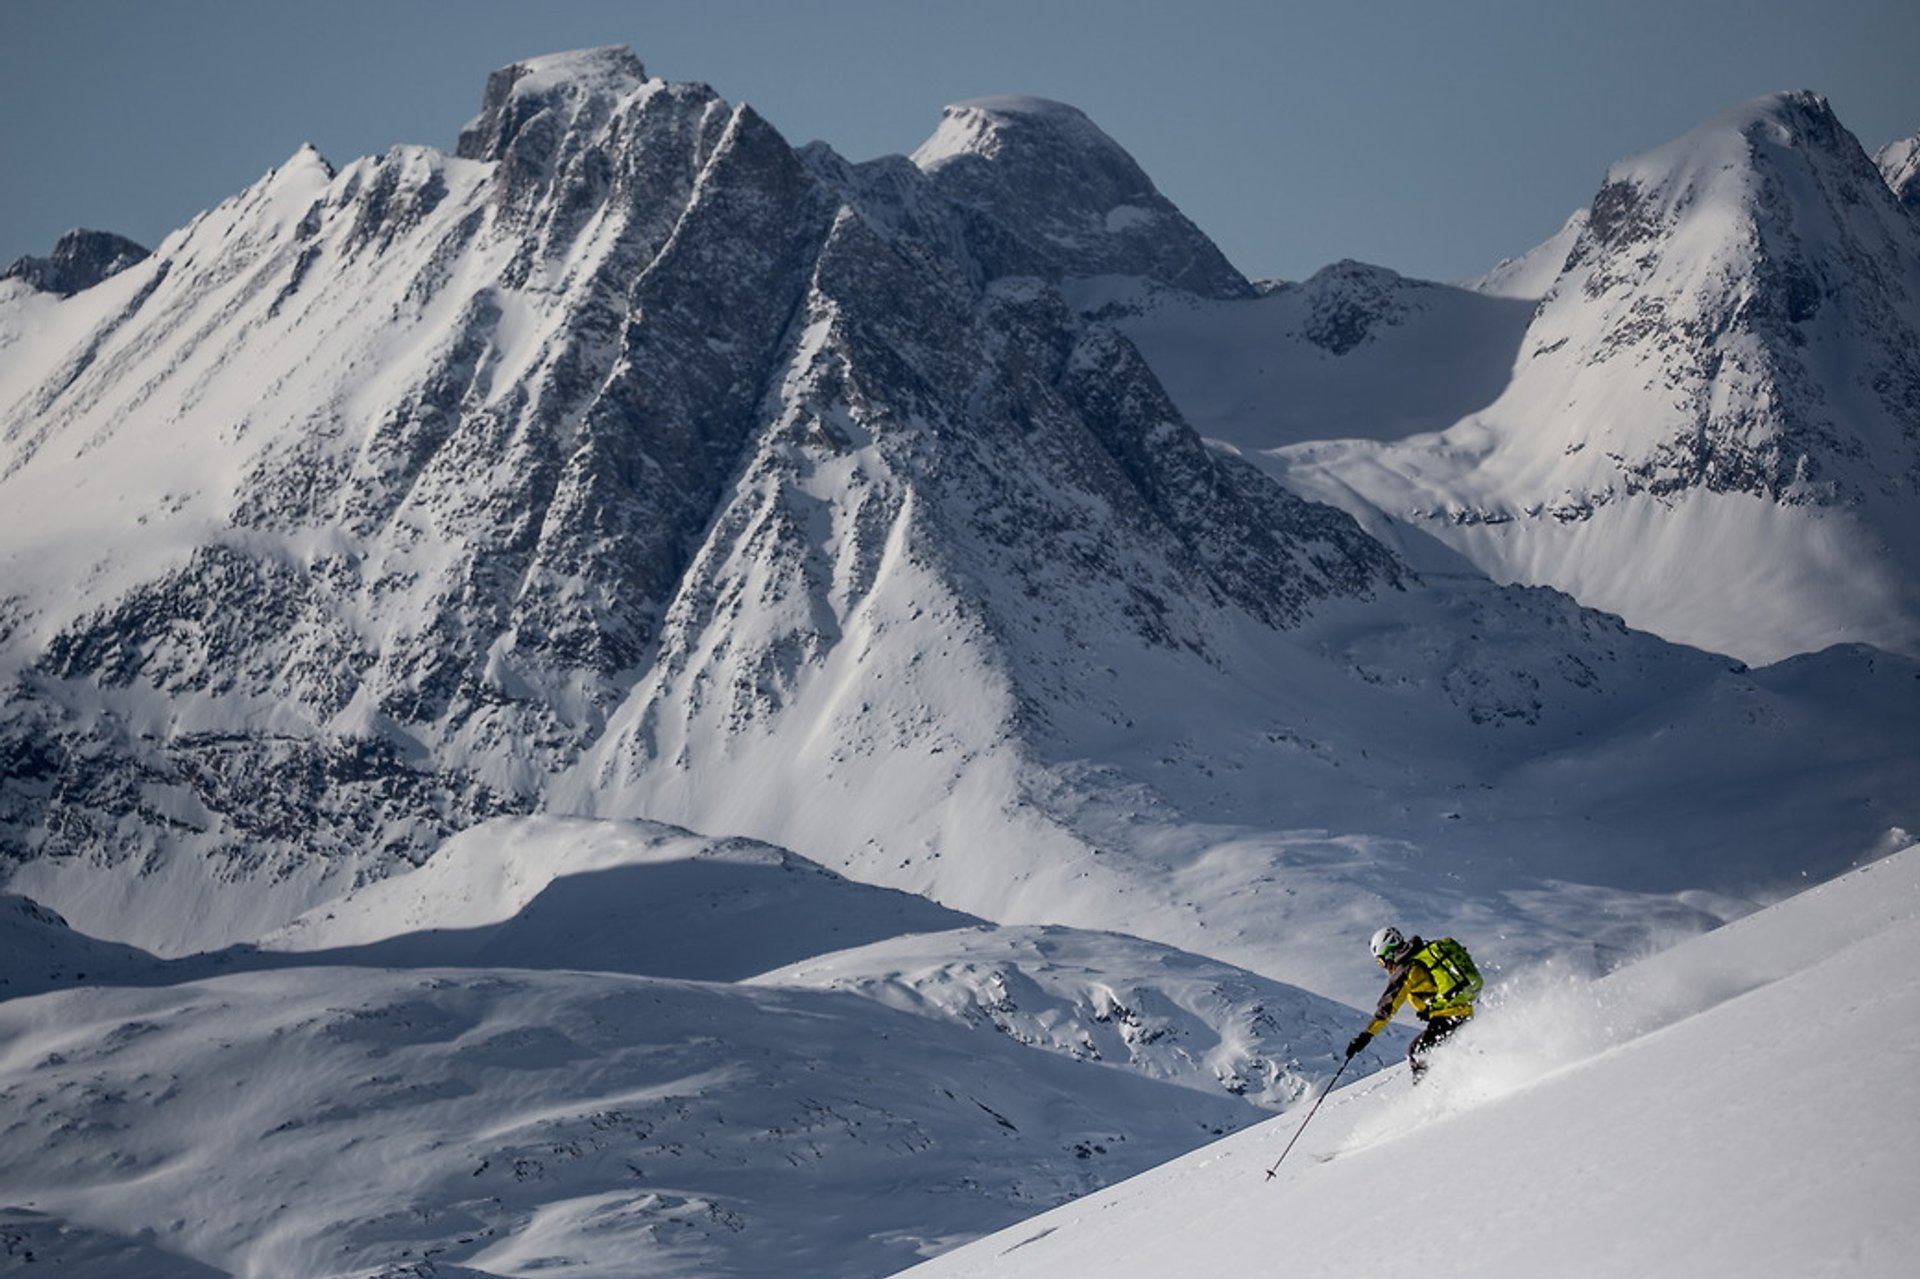 Ski Tours and Heliskiing in Greenland 2020 - Best Time